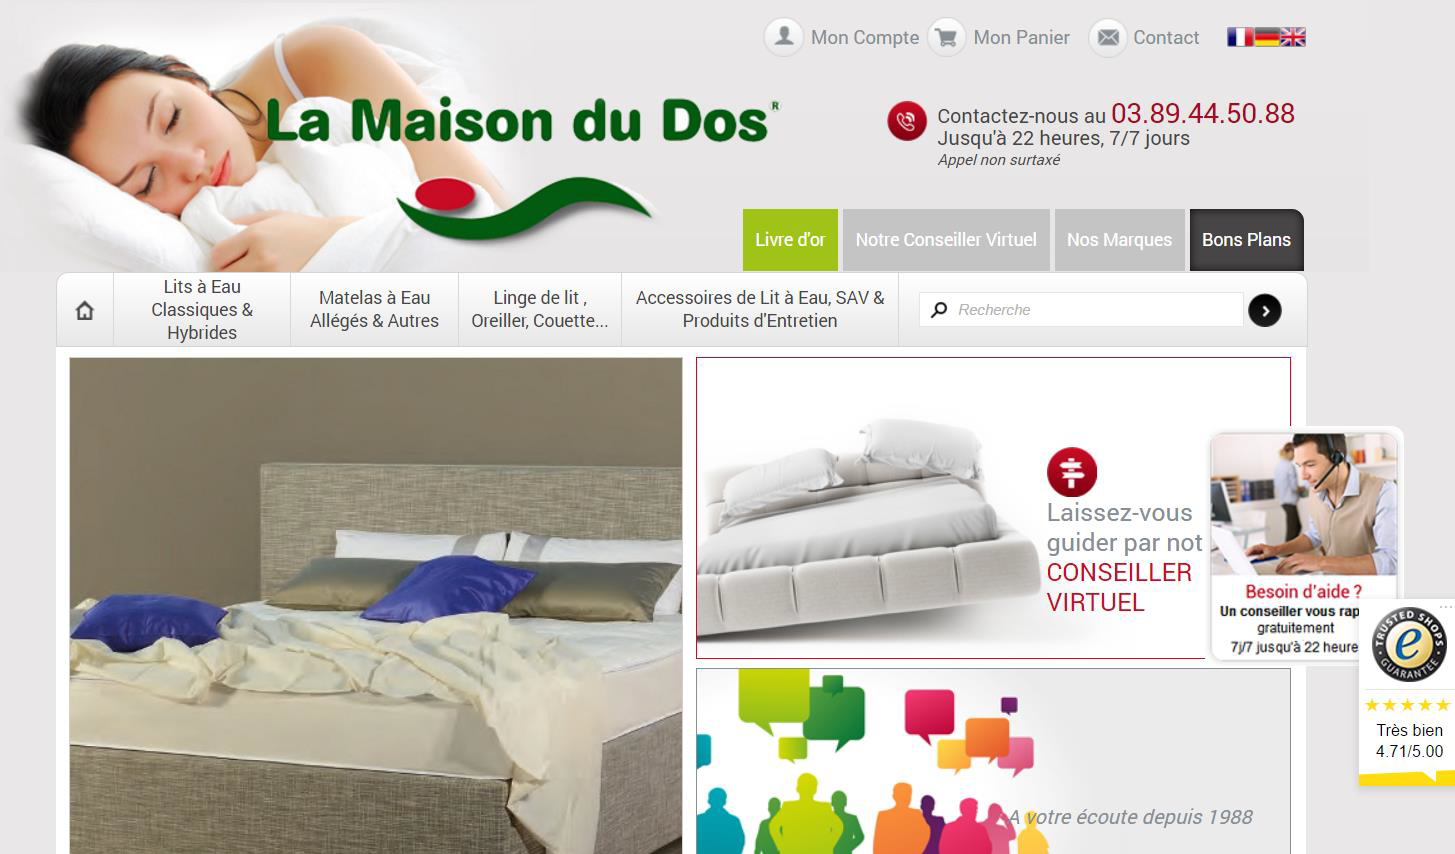 La Maison du dos, client Shop Application utilisant Trusted Shops